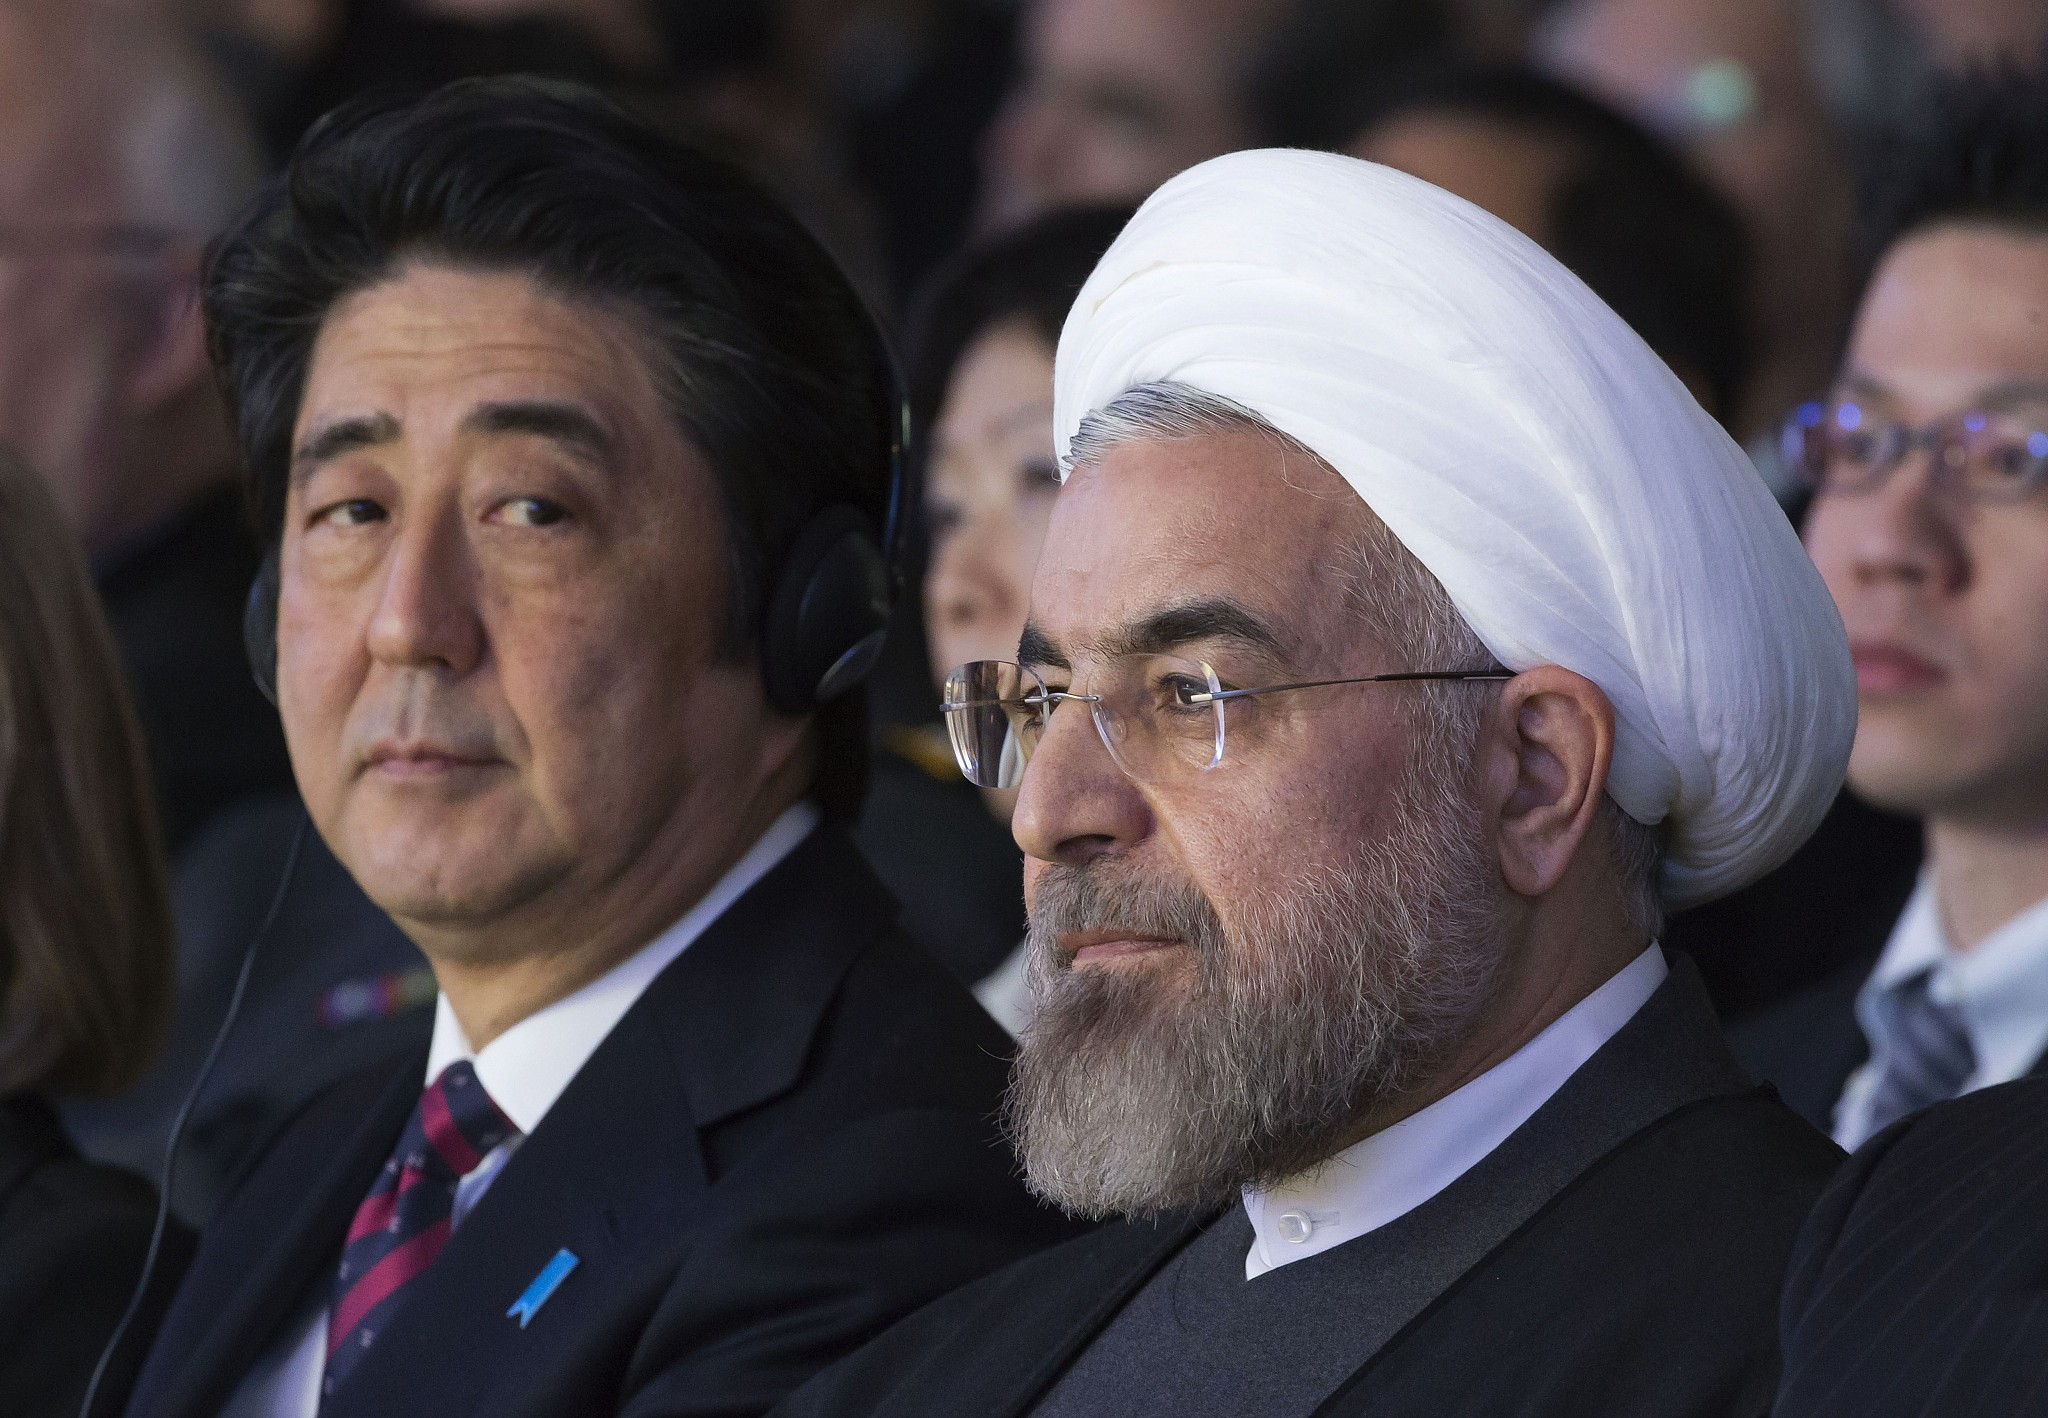 Japan's prime minister warns 'accidental conflict' could erupt between U.S., Iran